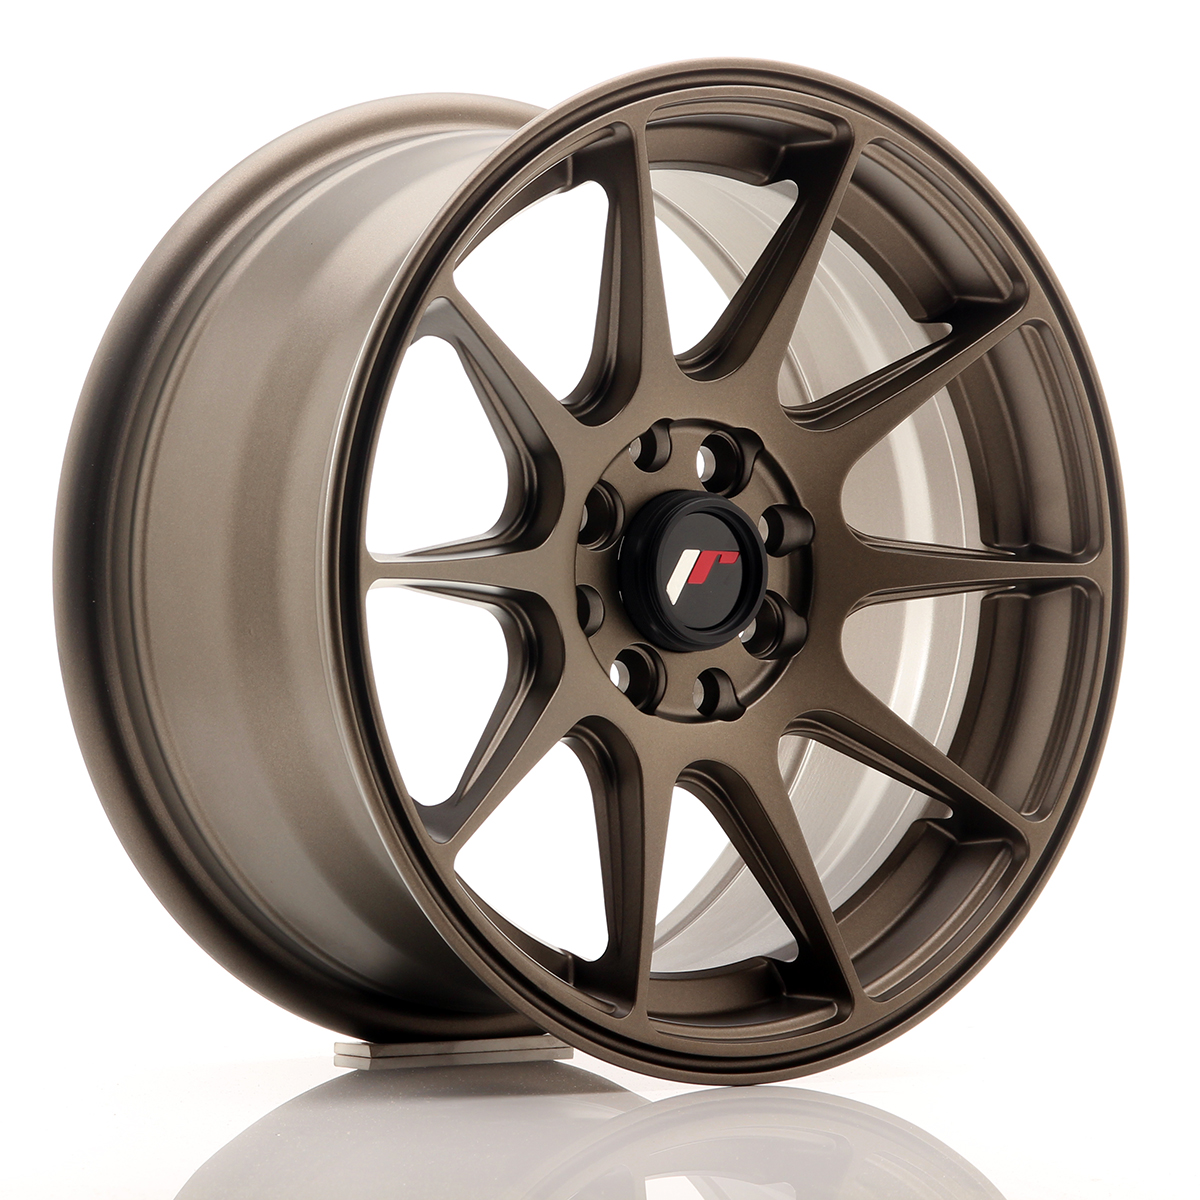 Japan Racing JR Wheels JR11 15x7 ET30 4x108 4x100 Gun metal